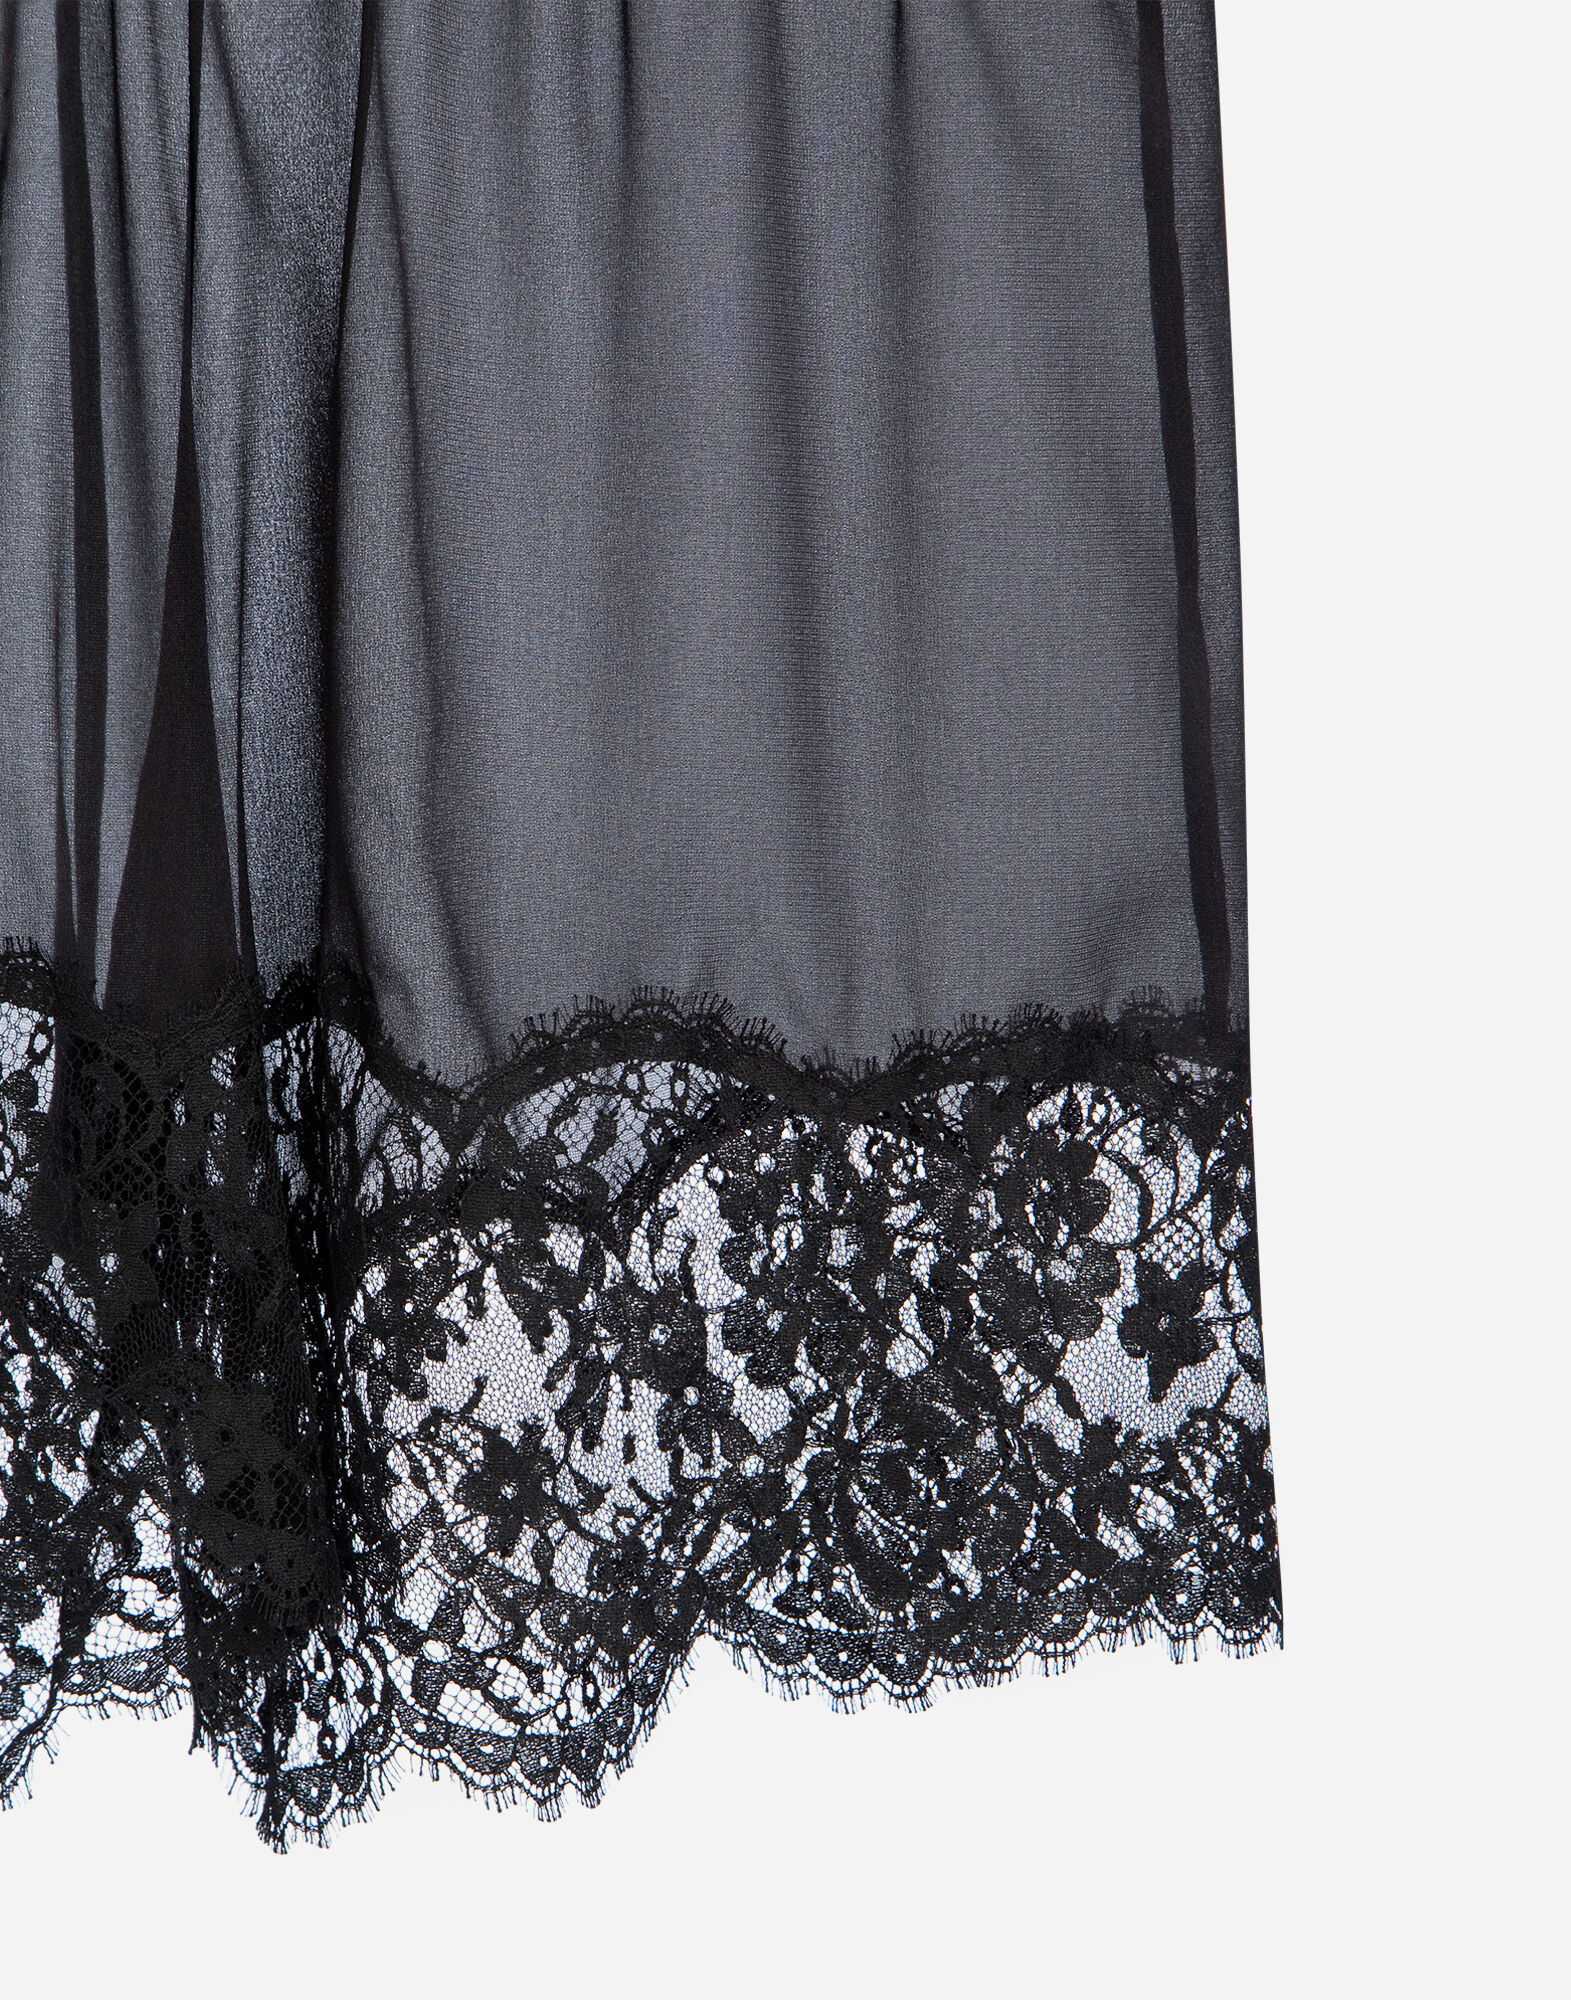 Dolce&Gabbana SILK LINGERIE SHORTS WITH LACE TRIM